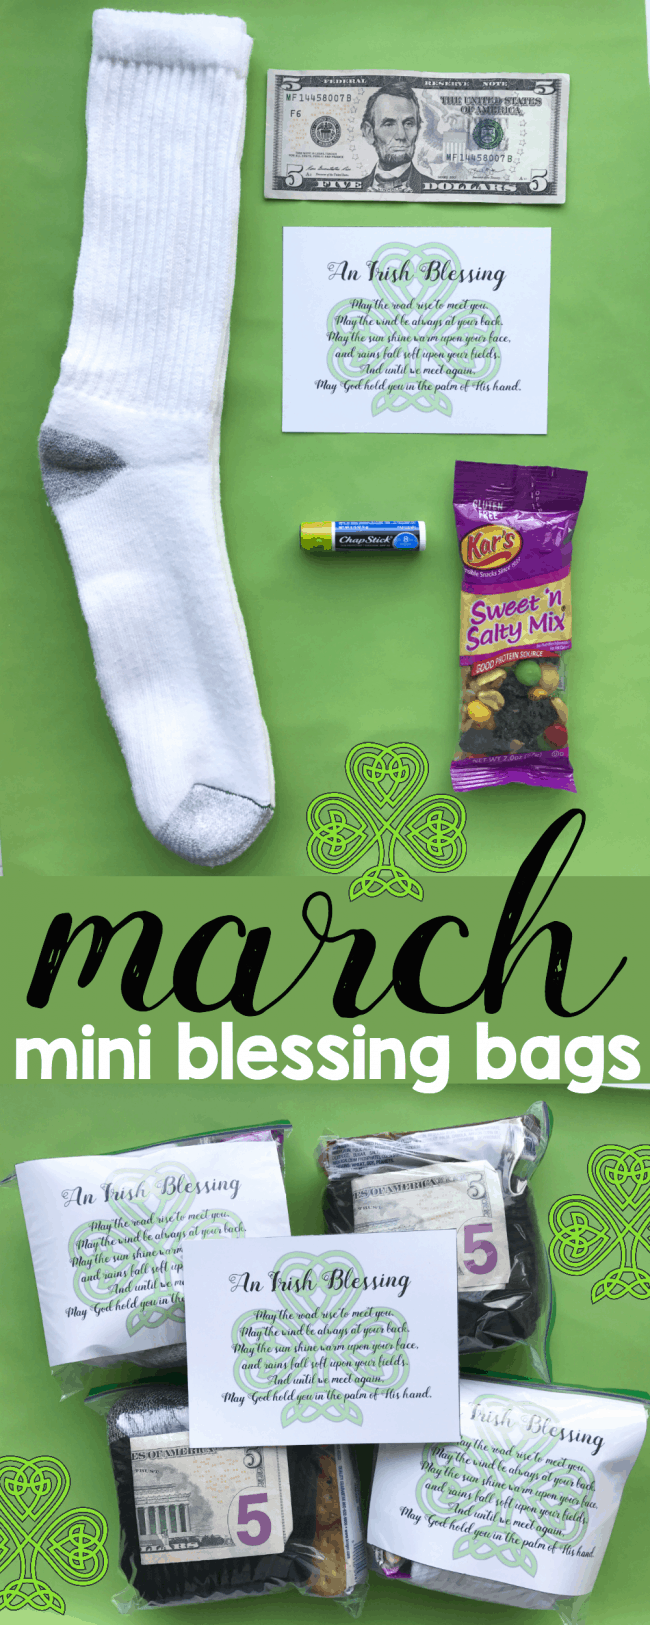 March Mini Blessing Bags with free Irish Blessing printable